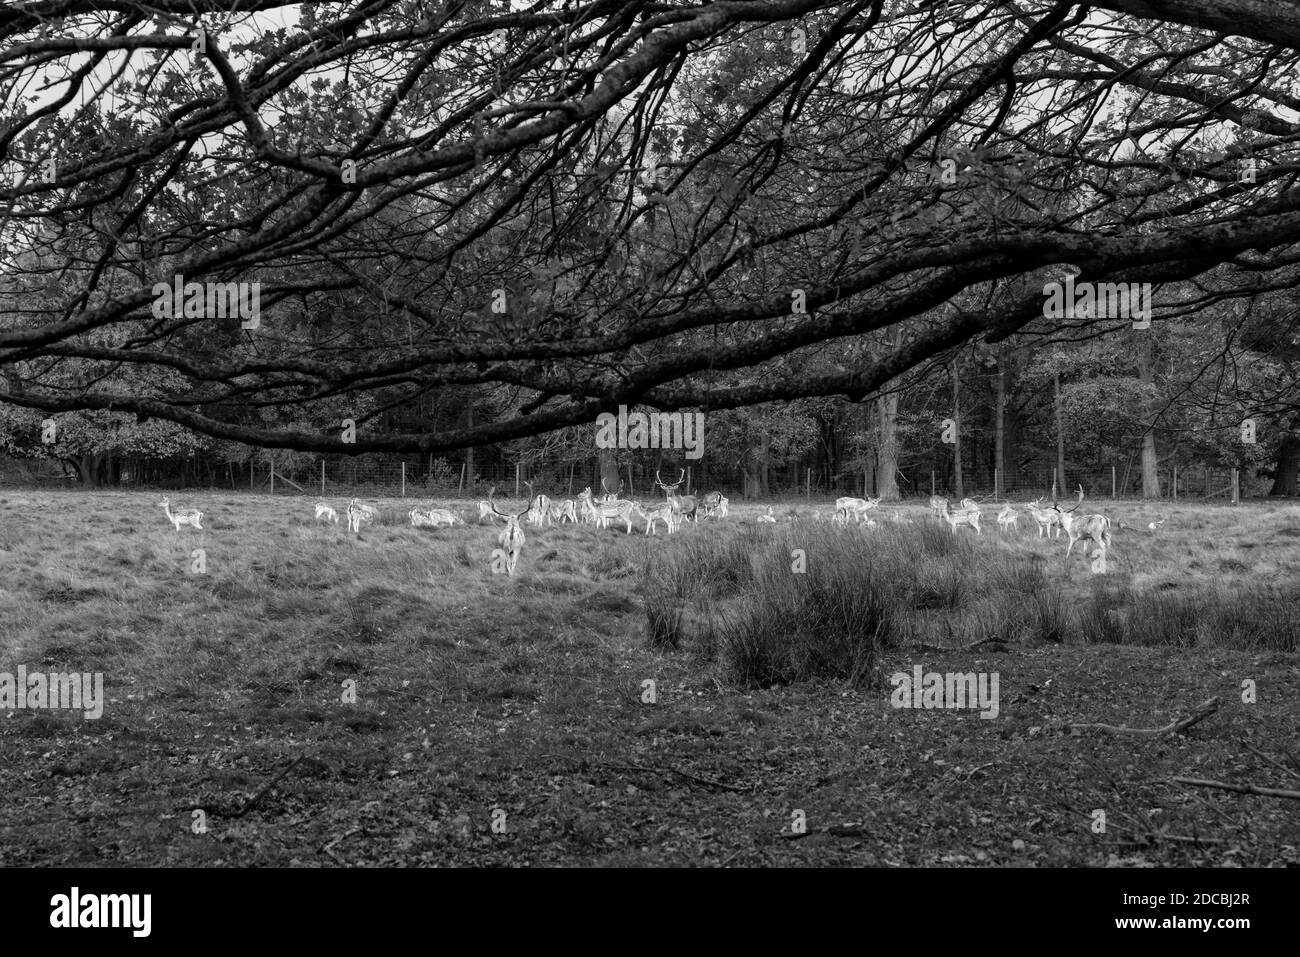 Black and white image of reindeer grazing in woods in wintertime, with a large tree framing the image. Stock Photo